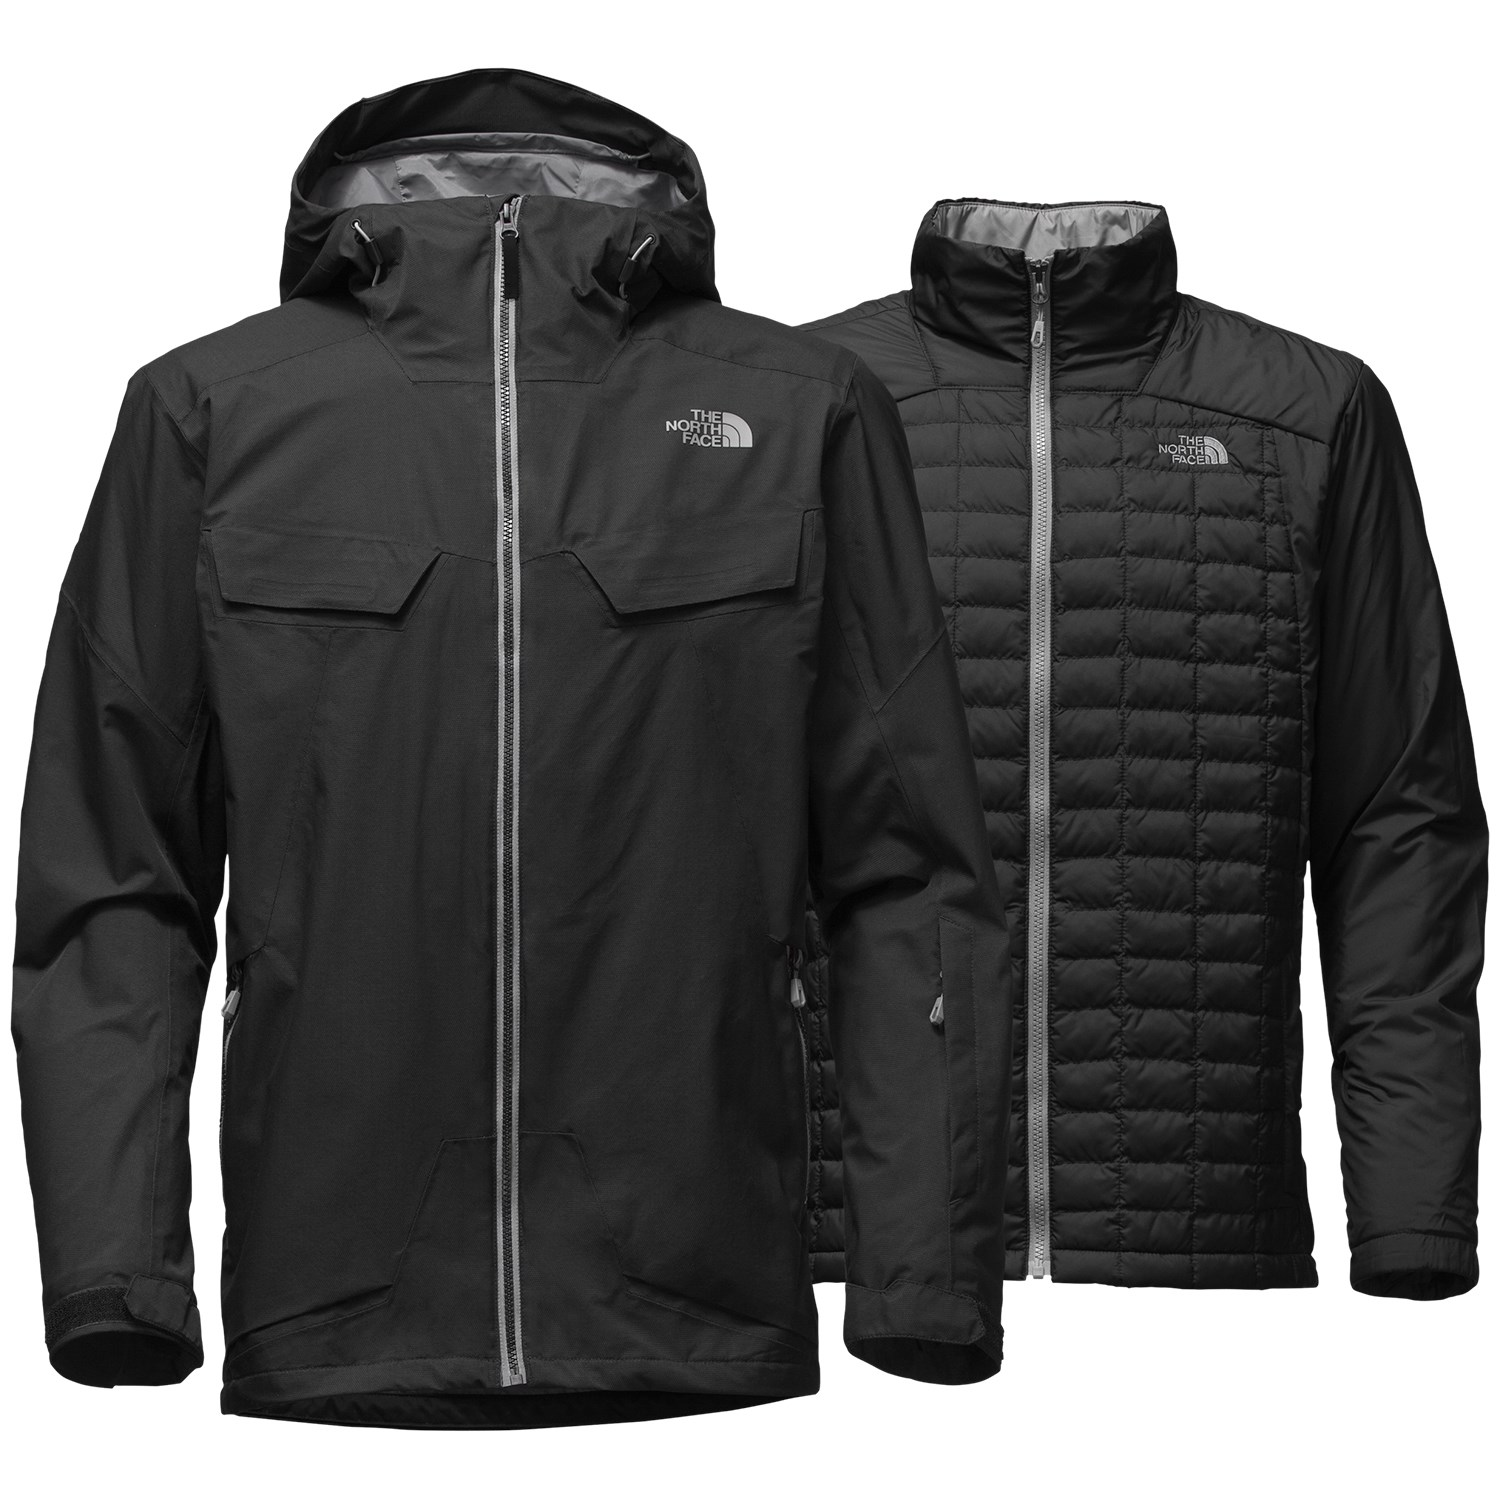 eefdd9c61456 The North Face Initiator ThermoBall™ Triclimate® Jacket